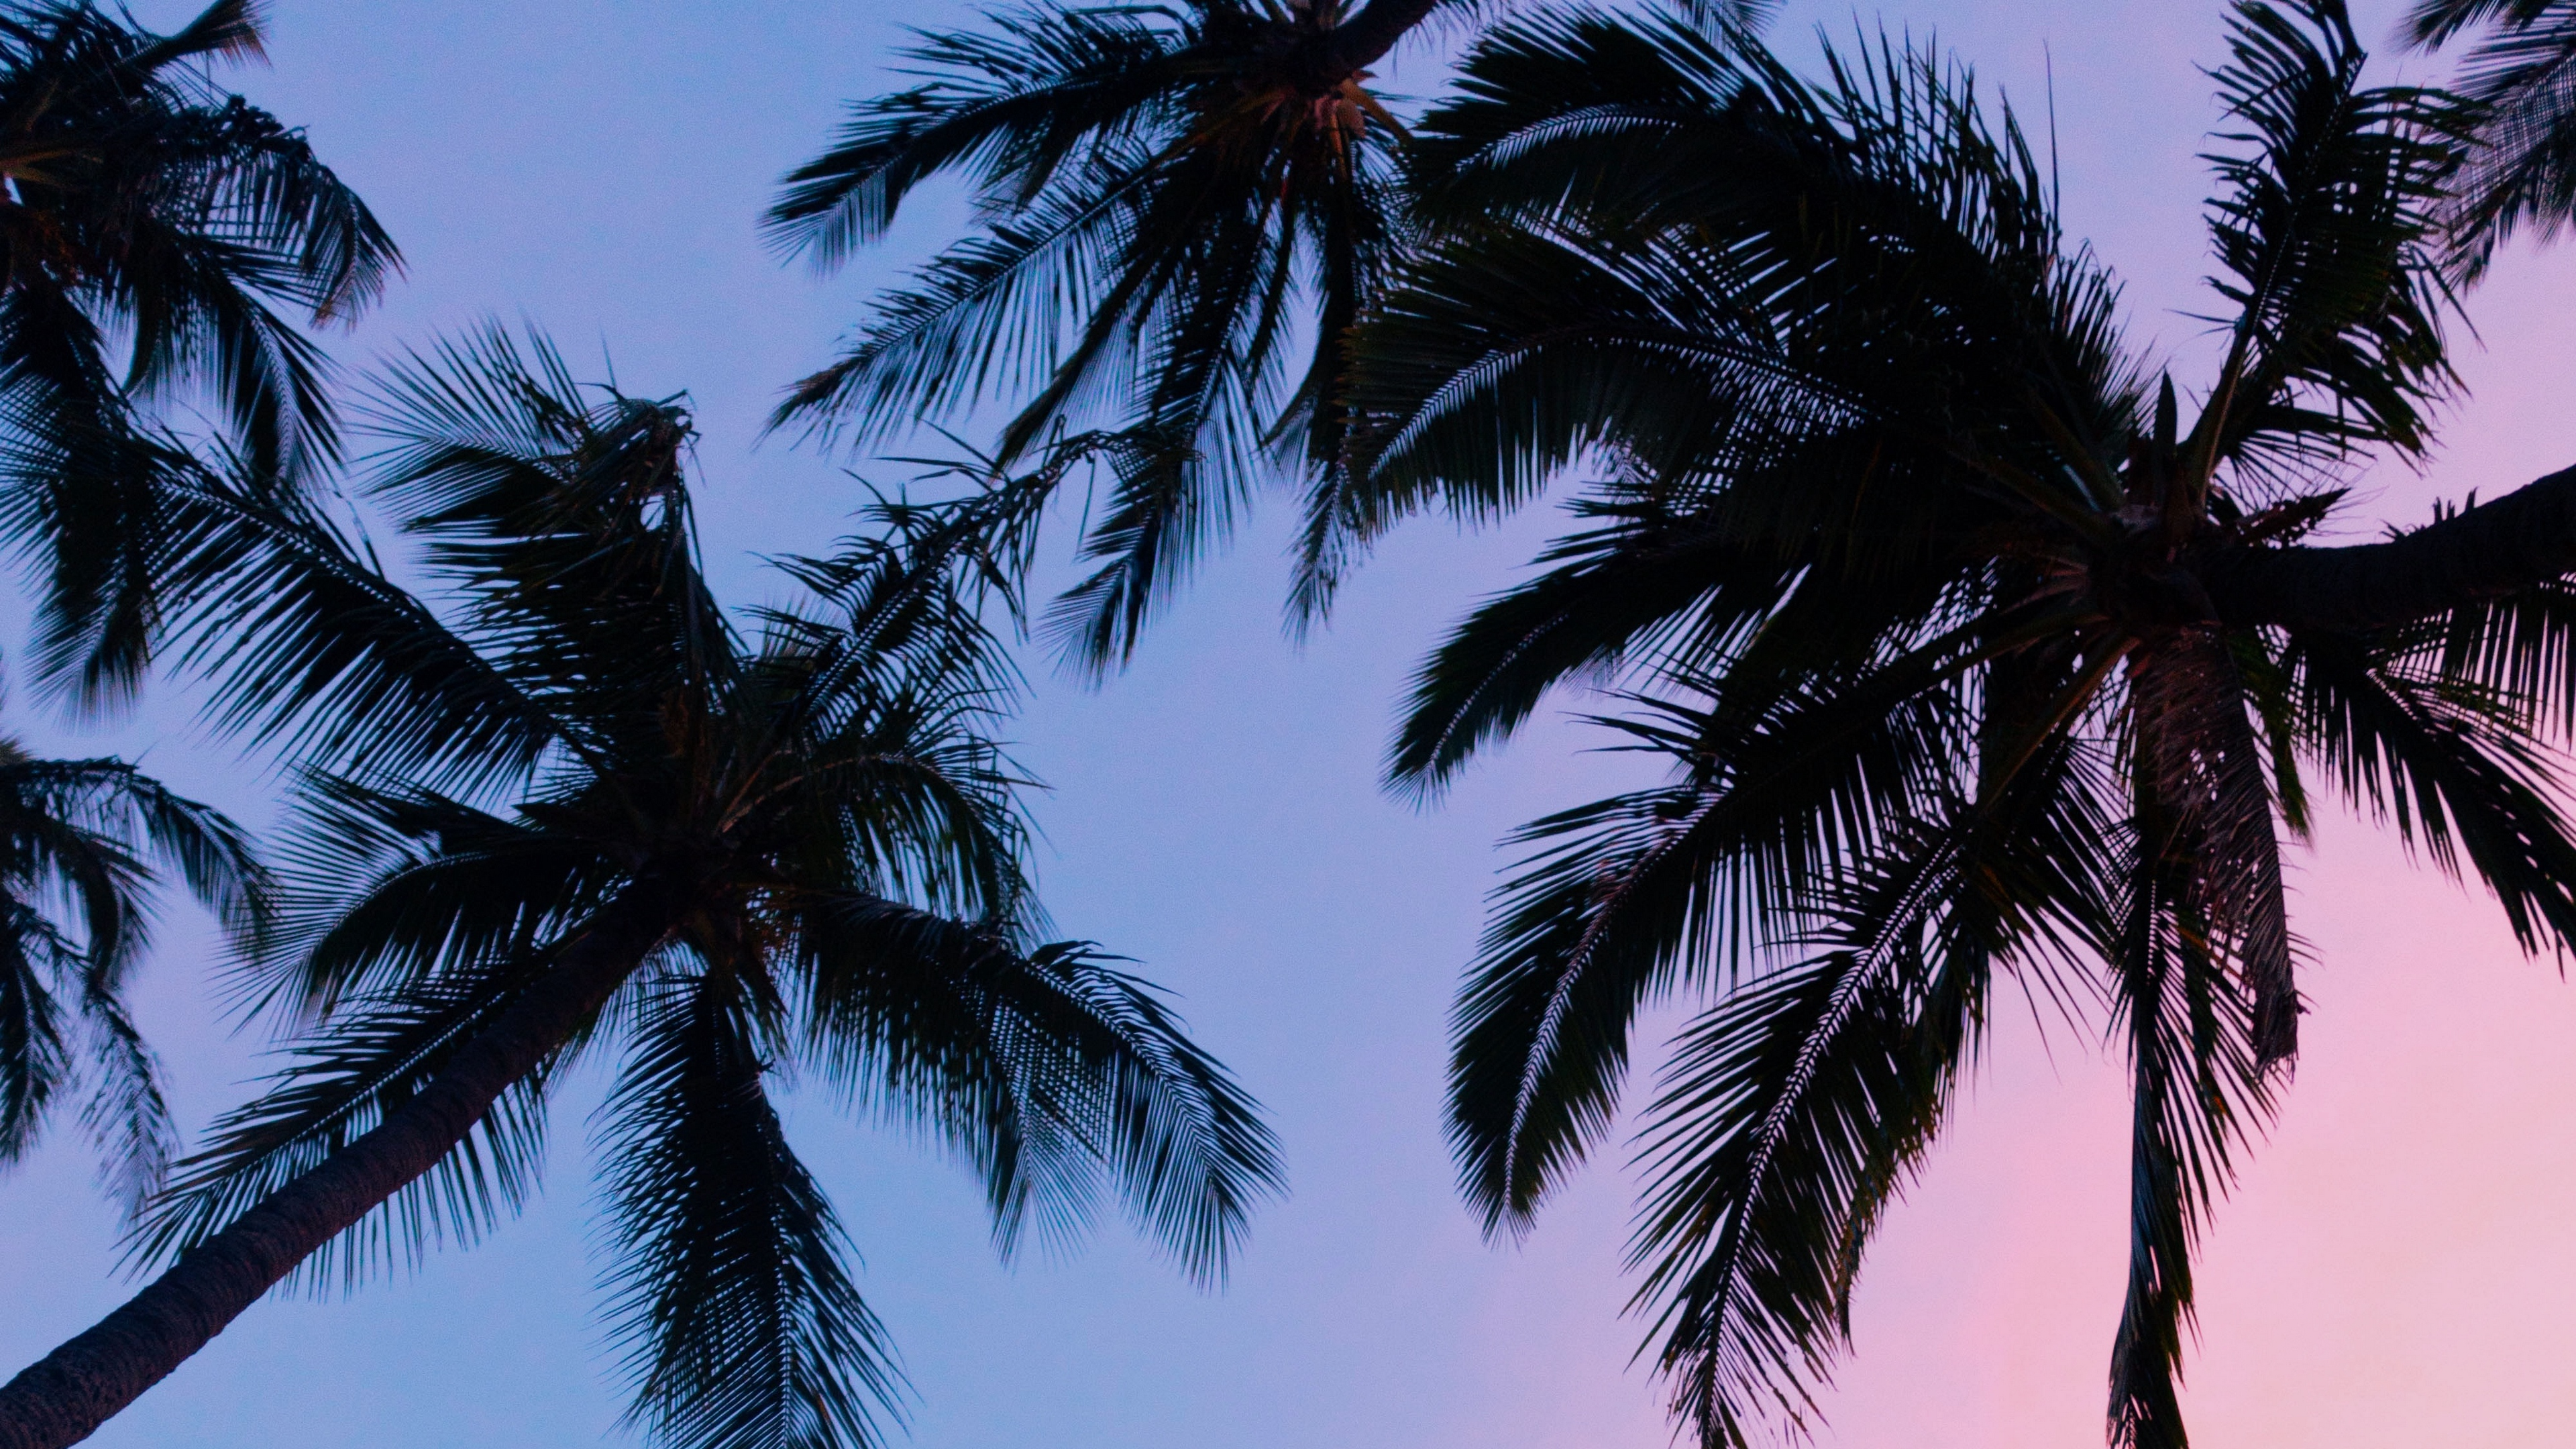 palms sunset bottom view branches sky 4k 1541113535 - palms, sunset, bottom view, branches, sky 4k - sunset, palms, bottom view